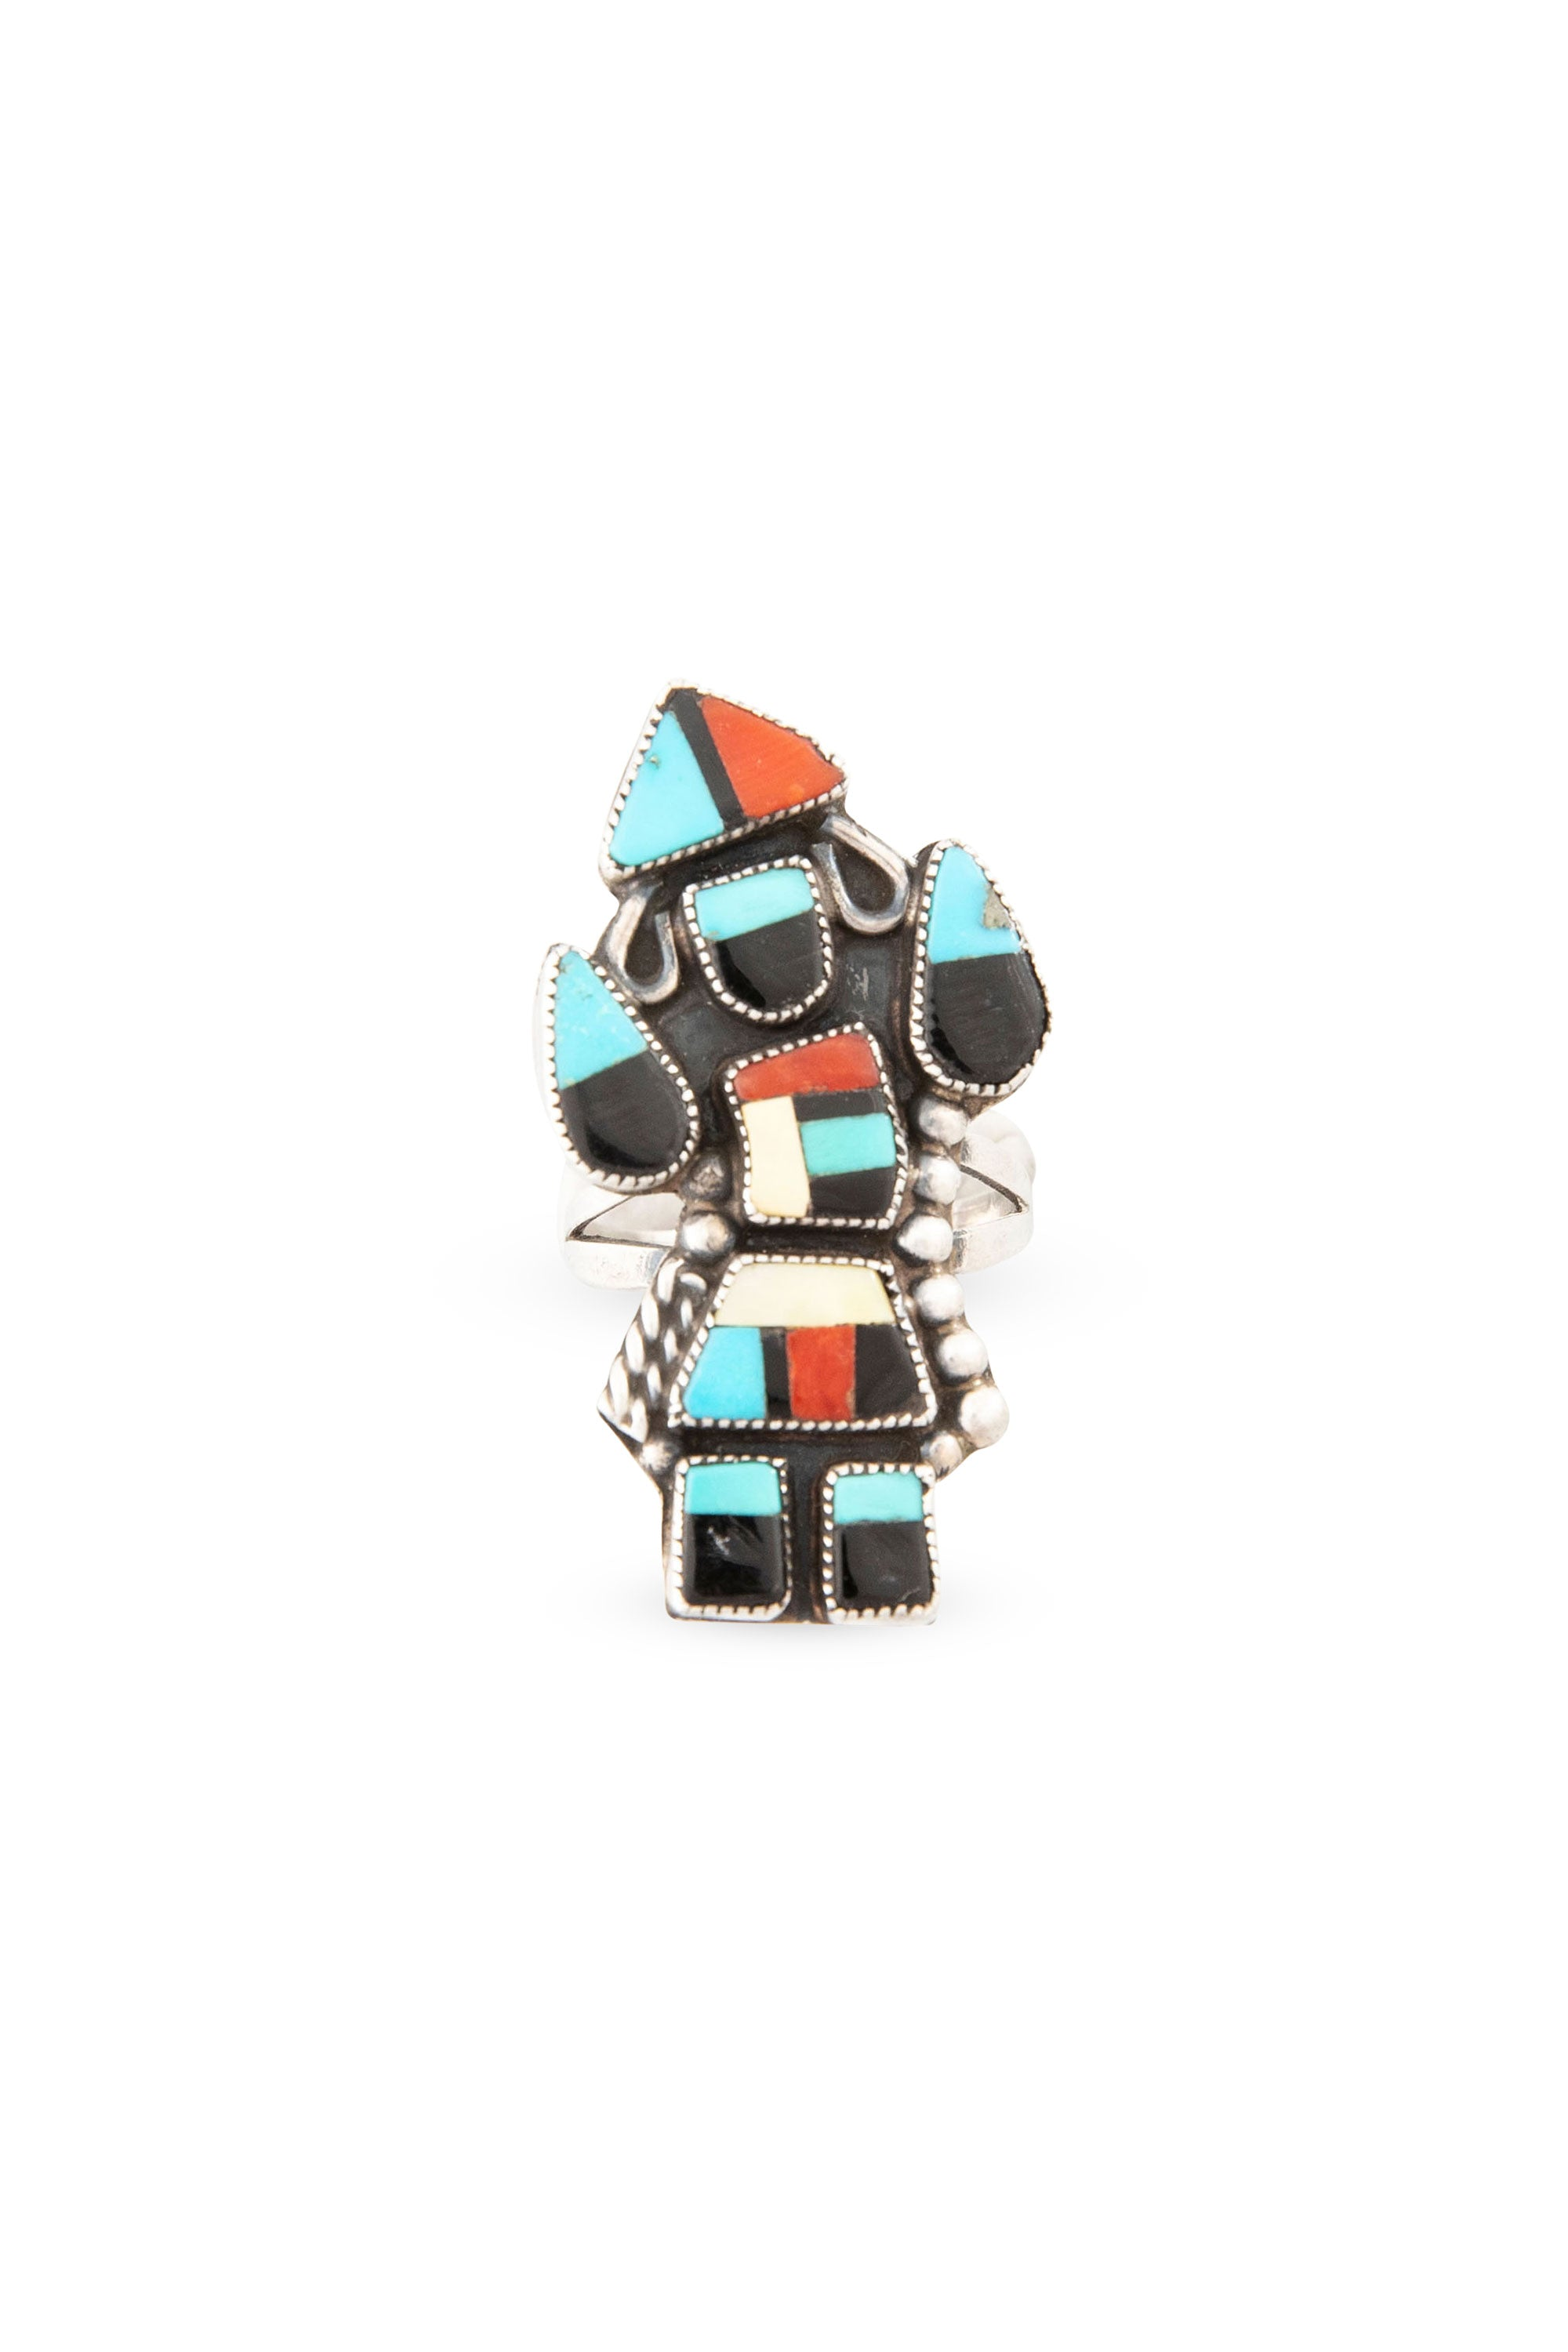 Ring, Inlay, Zuni, Kachina, Vintage, 406